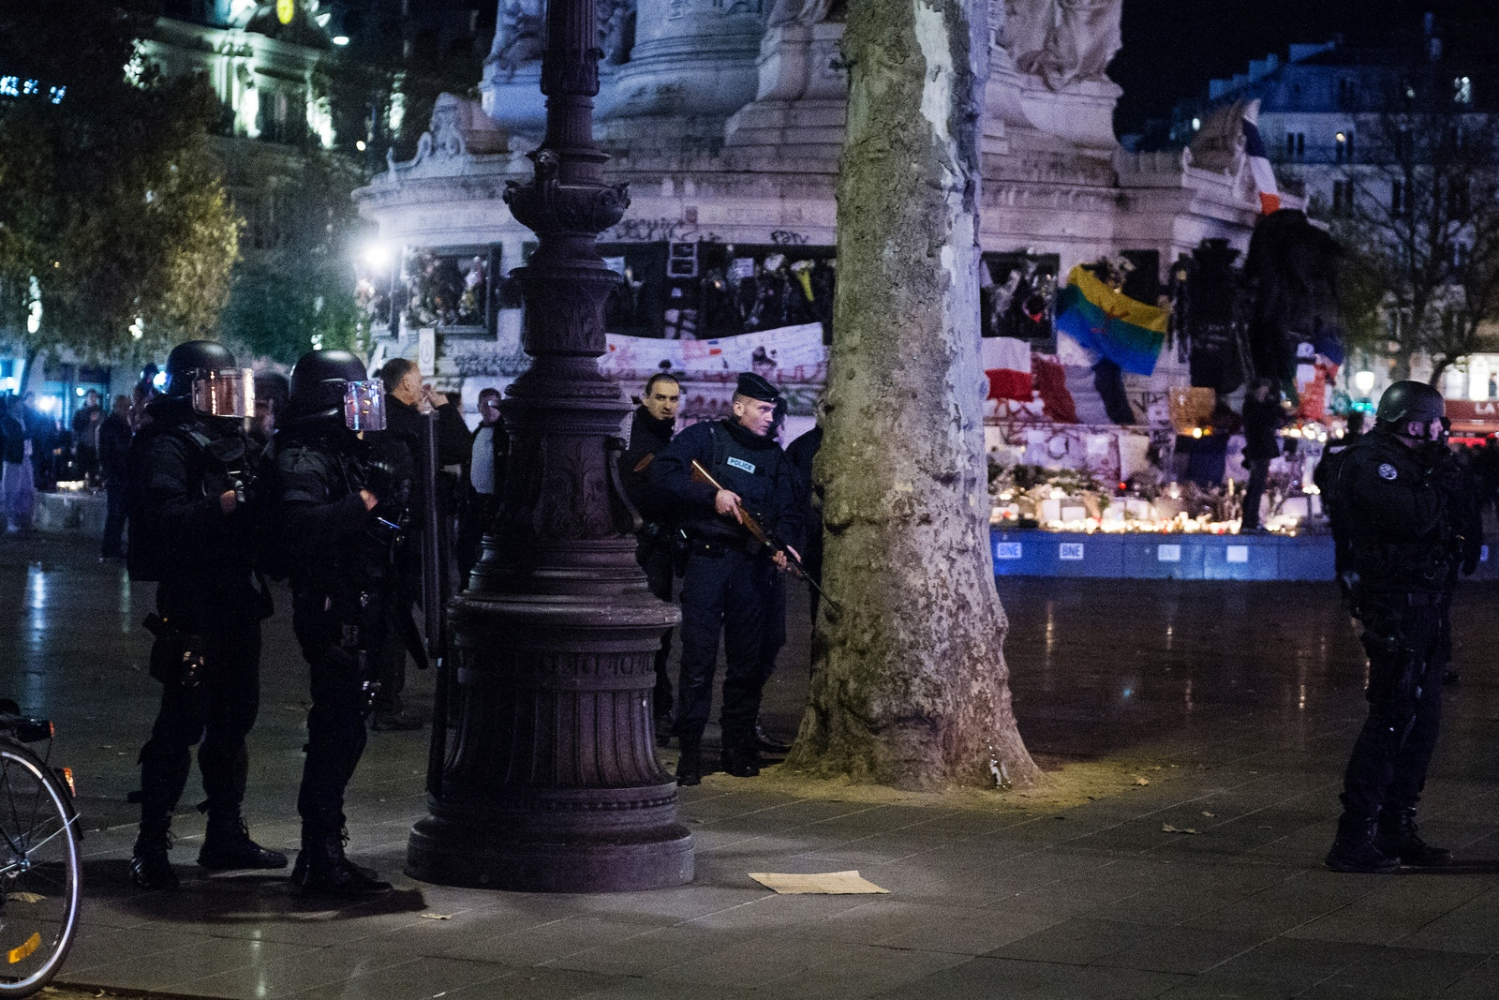 Panic breaks out as a false alarm about another shooting breaks out two nights after several coordinated terroristattacks killed over a hundred people in Paris, France.